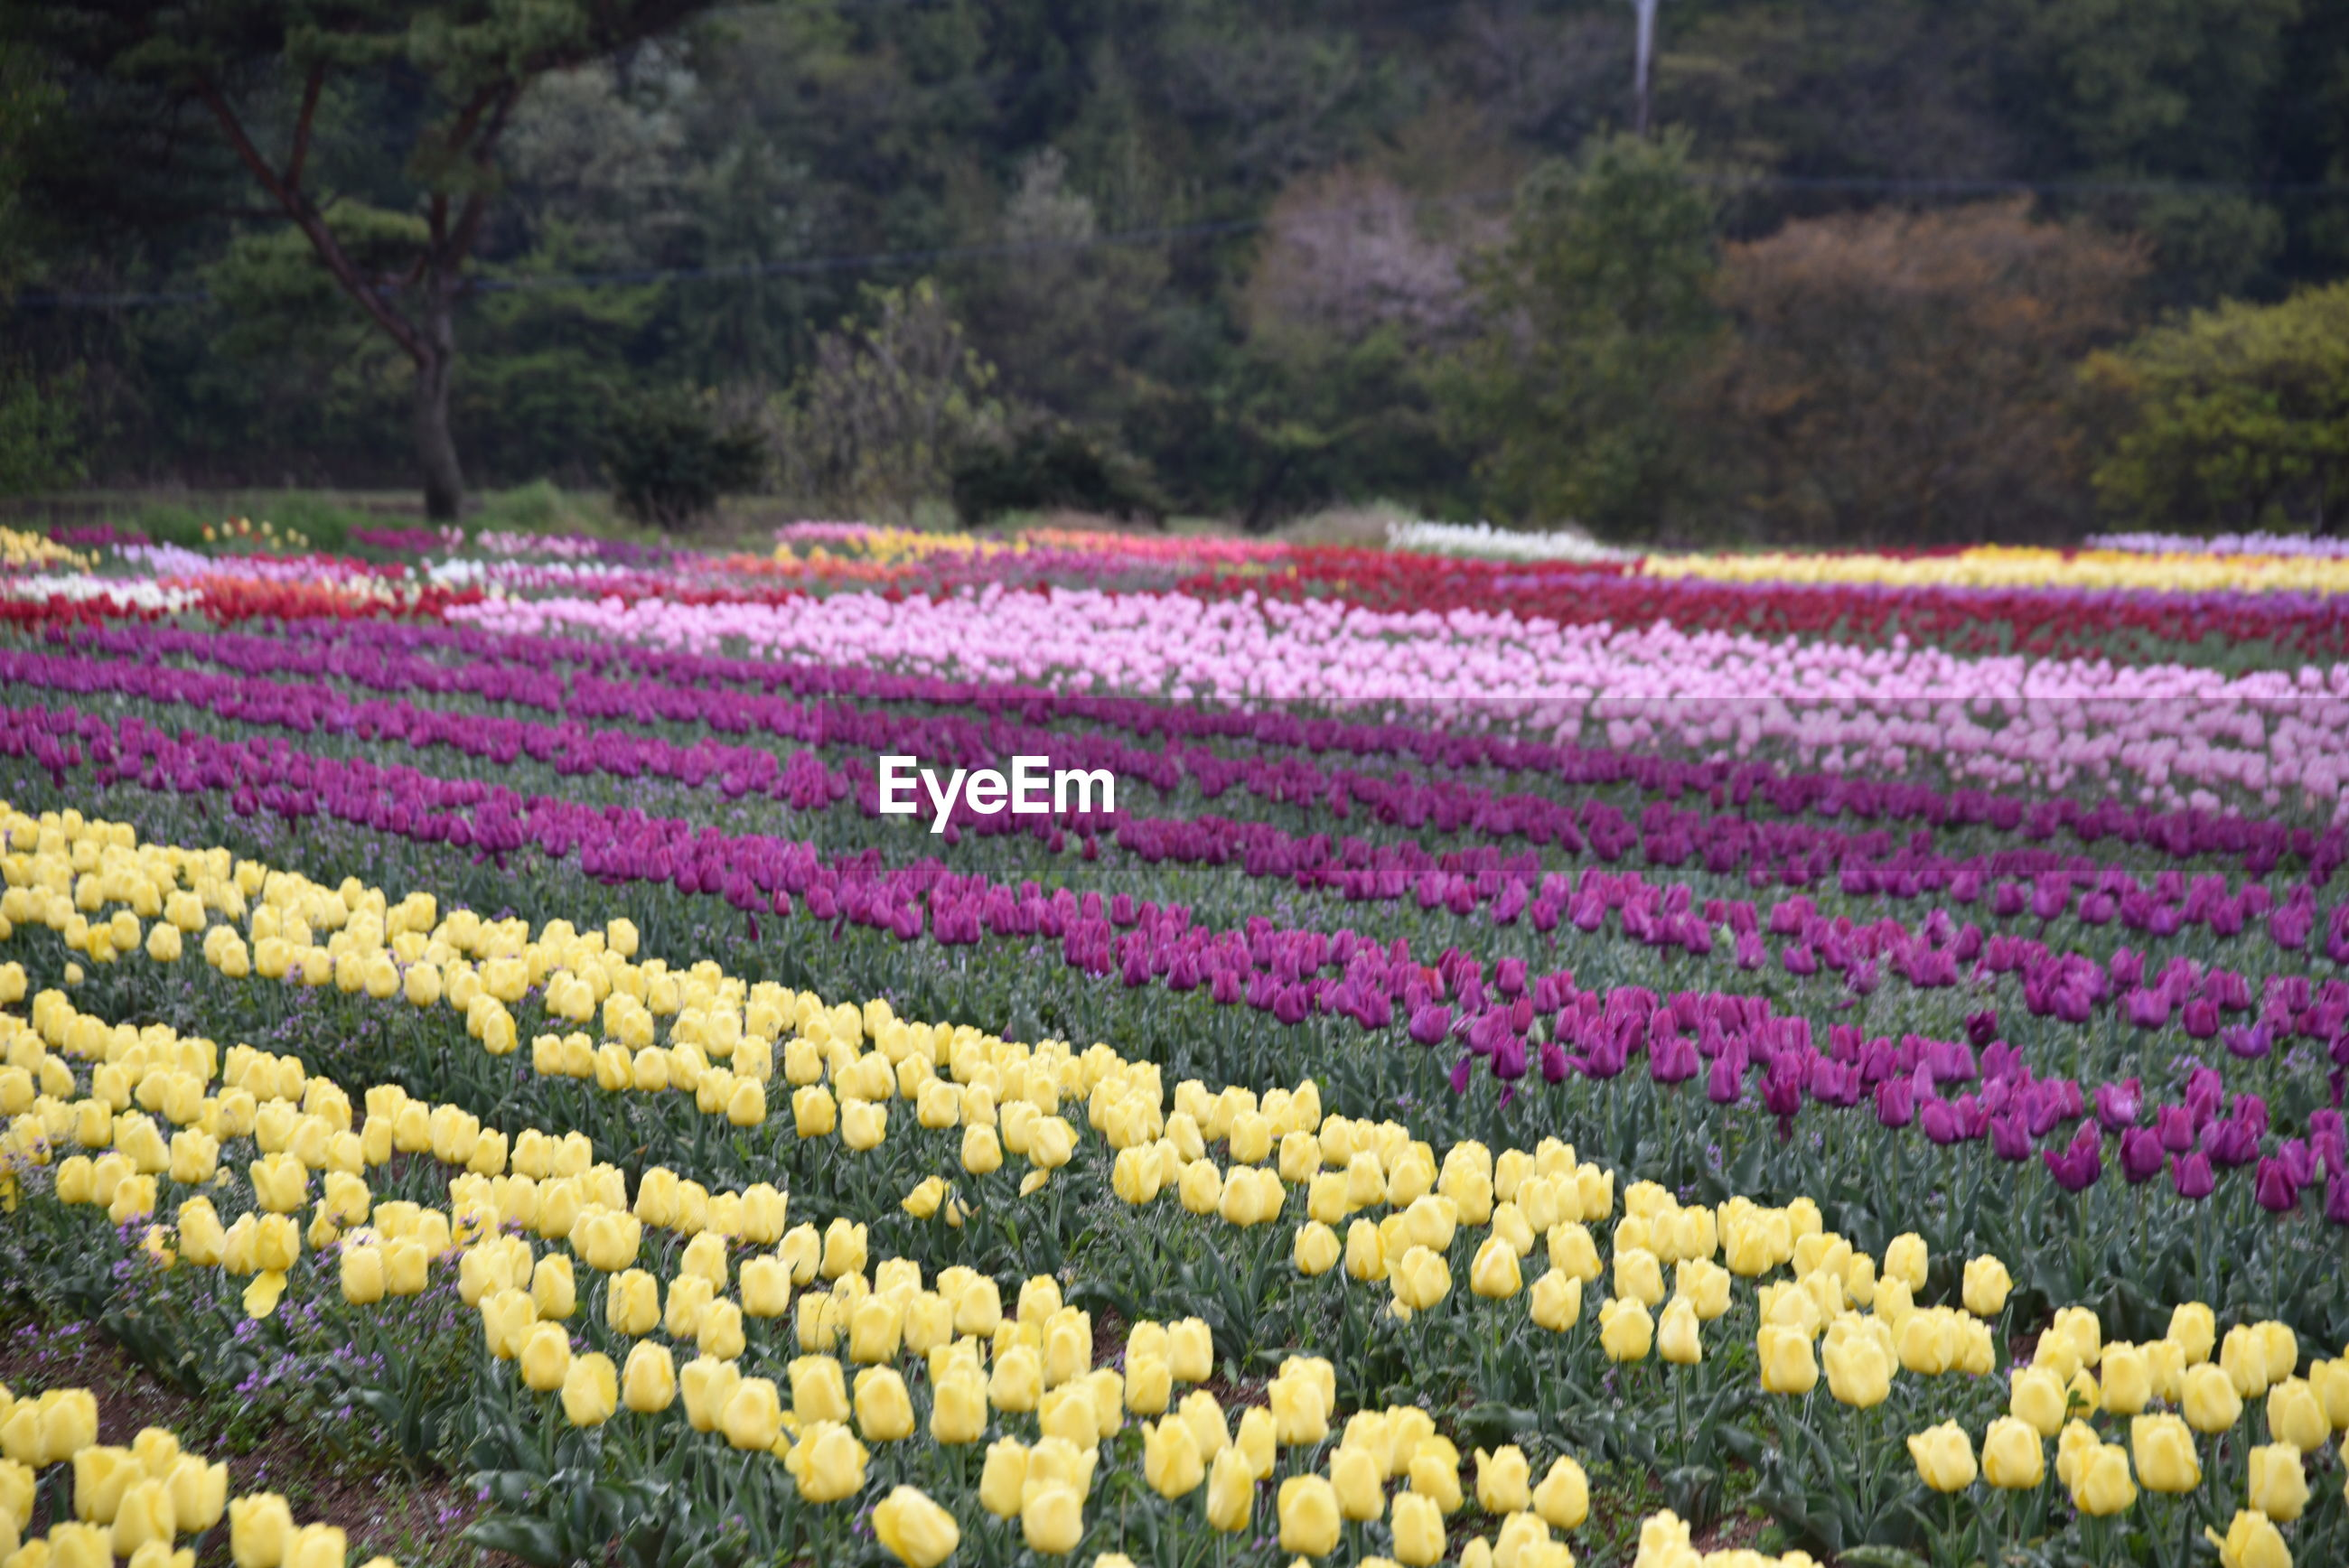 SCENIC VIEW OF PURPLE TULIPS ON FIELD AGAINST ROCKY MOUNTAINS